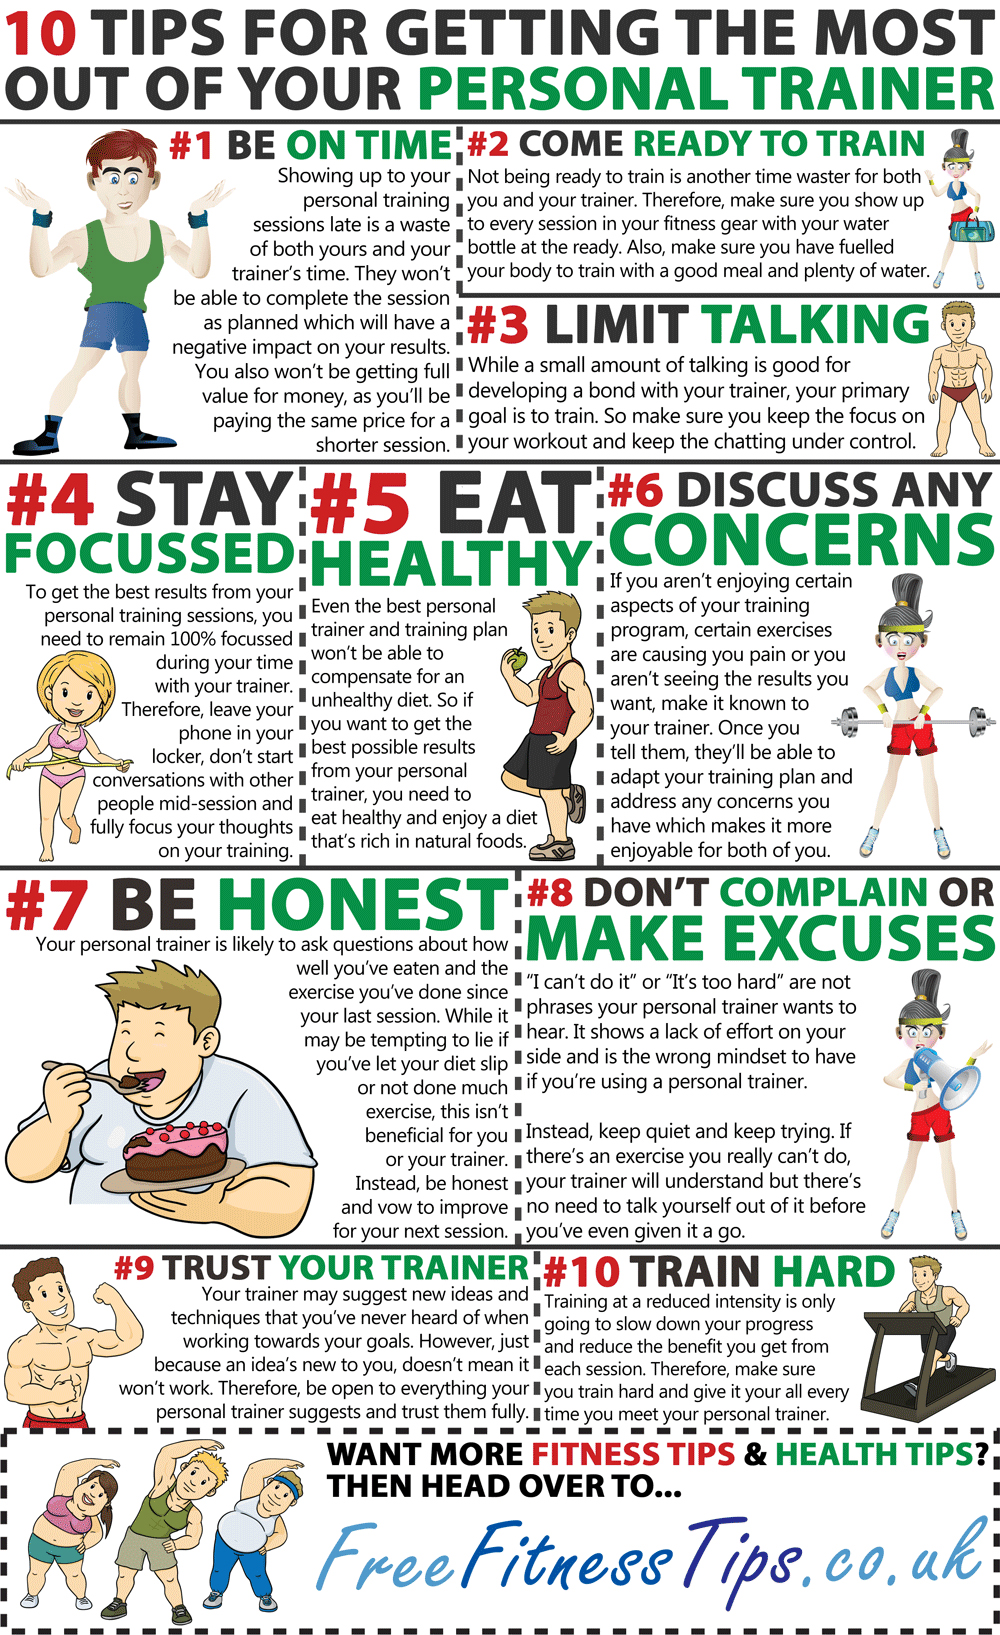 How To Make The Best Out Of Your Personal Trainer - Infographic